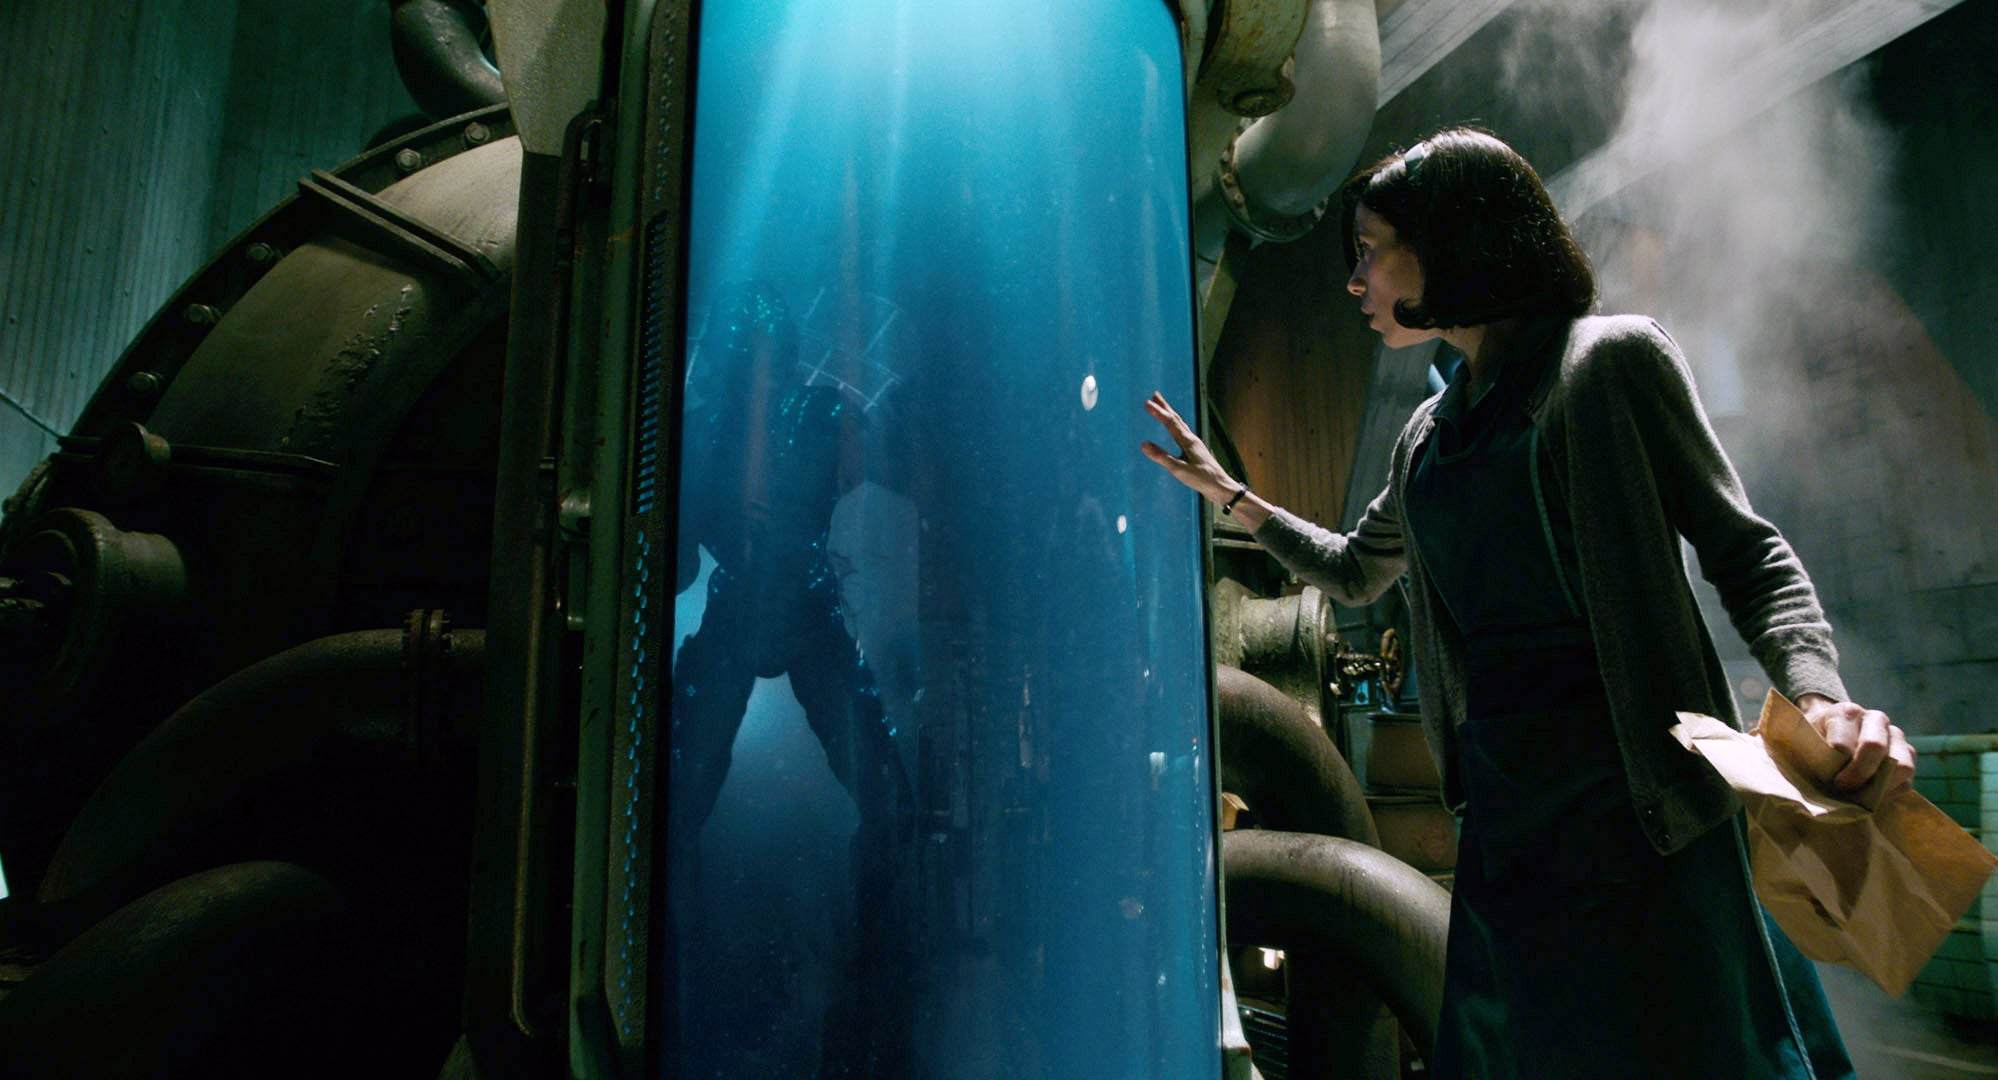 THE SHAPE OF WATER, from left: Doug Jones, Sally Hawkins, 2017. TM &  Fox Searchlight Pictures. All Rights reserved. /Courtesy Everett Collection